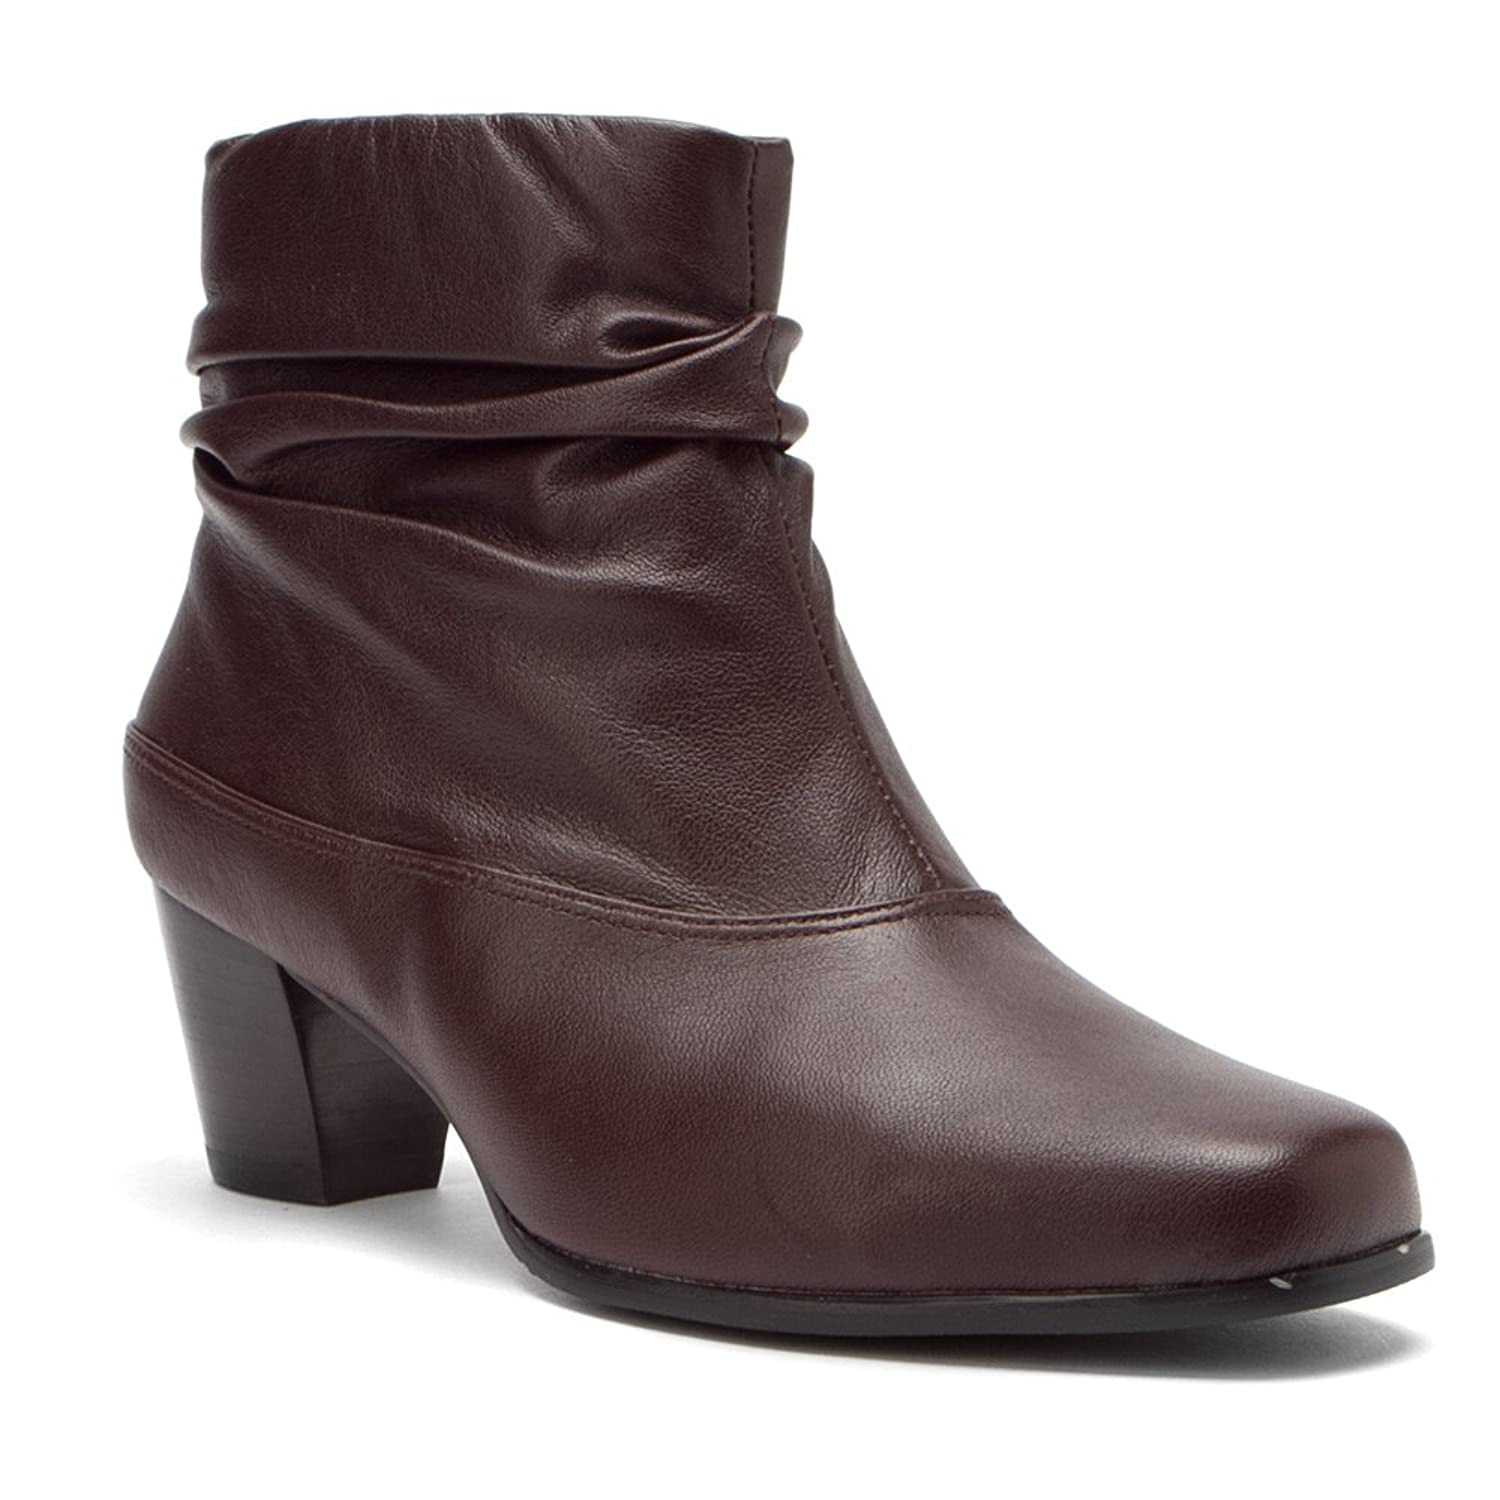 Women's David Tate Vera Ankle Boots Leather Upper